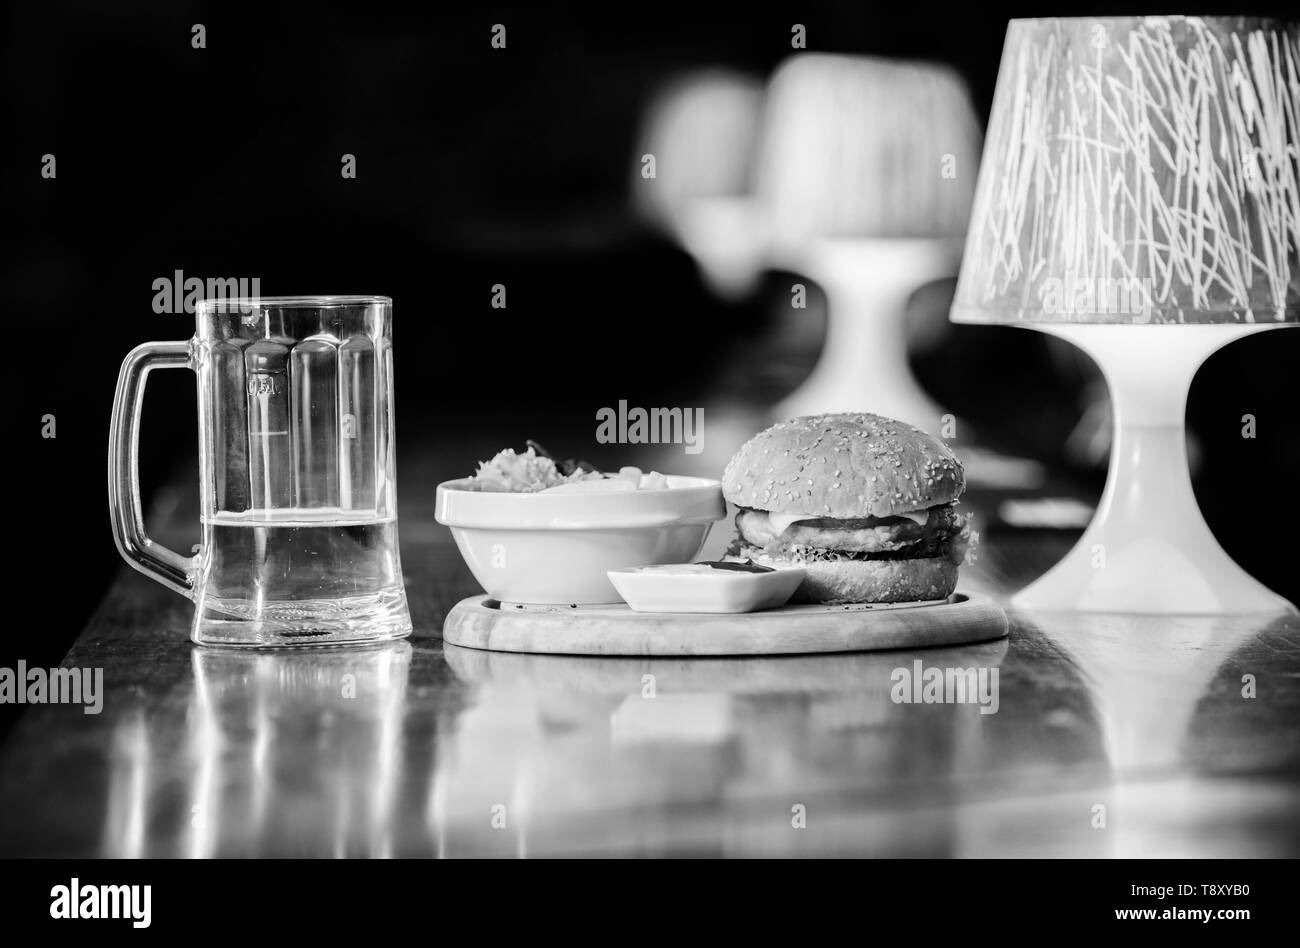 High calorie snack. Hamburger and french fries and tomato sauce on wooden board. Delicious burger. Burger with cheese meat and salad. Pub food and mug of beer. Fast food concept. Burger menu. - Stock Image